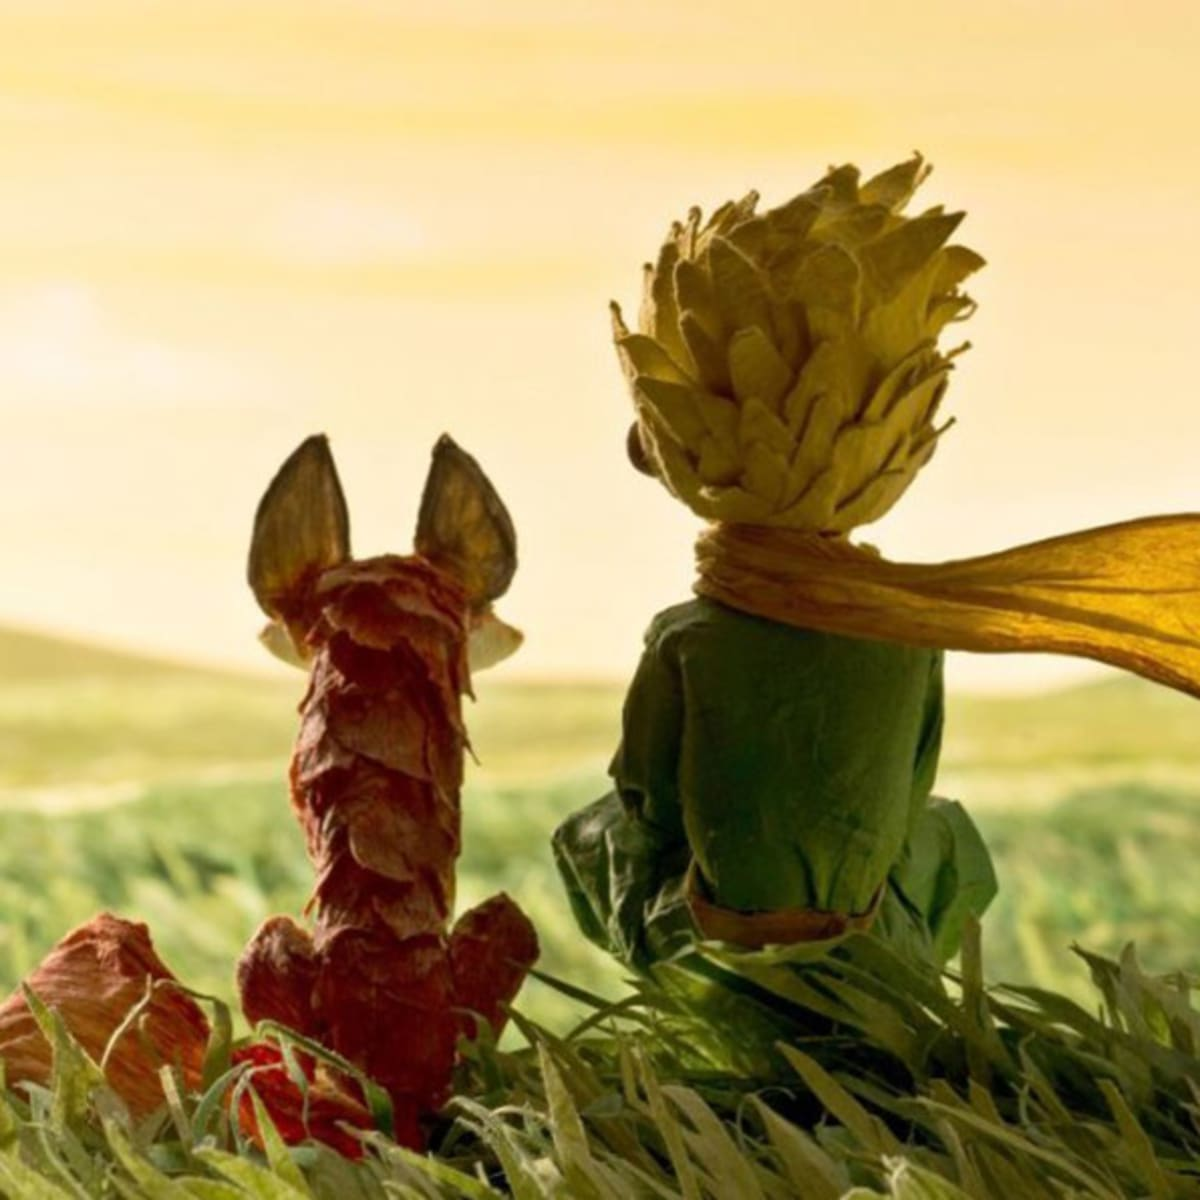 How The Little Prince Taught Me The Value Of Self Discovery In The Modern World Verily